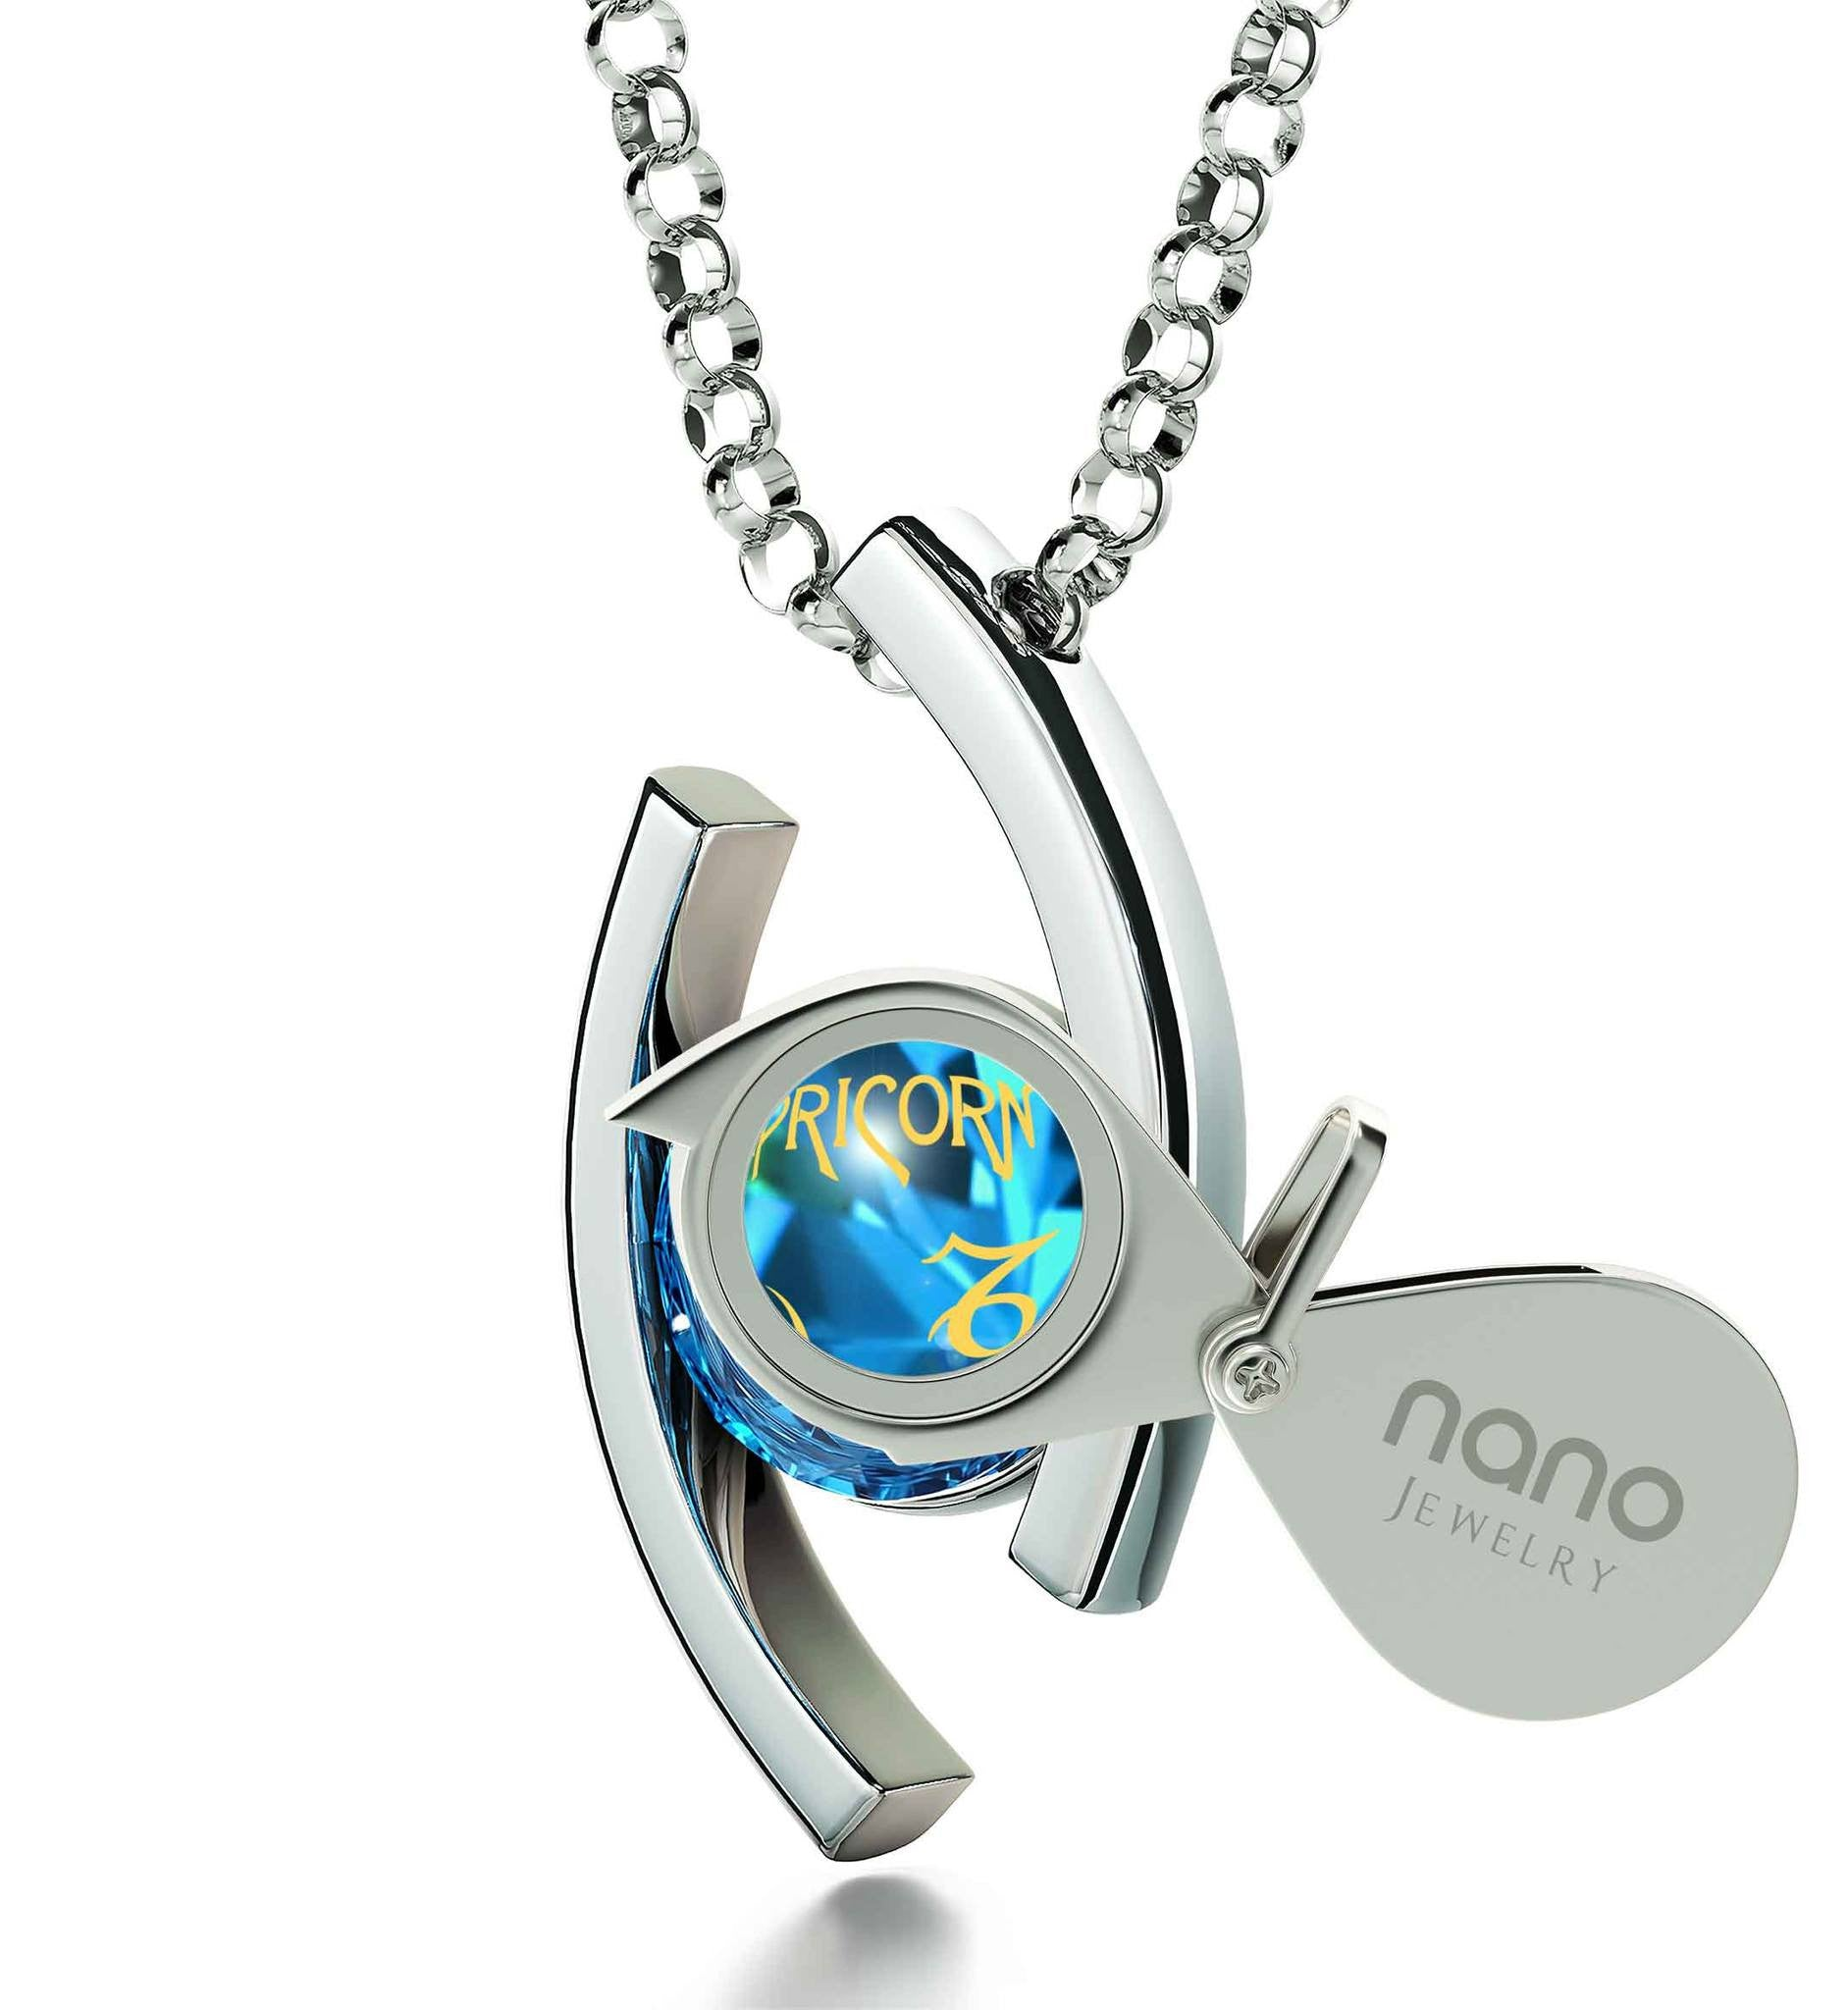 """Capricorn Jewelry With 24k Zodiac Imprint, Xmas Ideas for Her, Good Presents for Girlfriend, by Nano"""